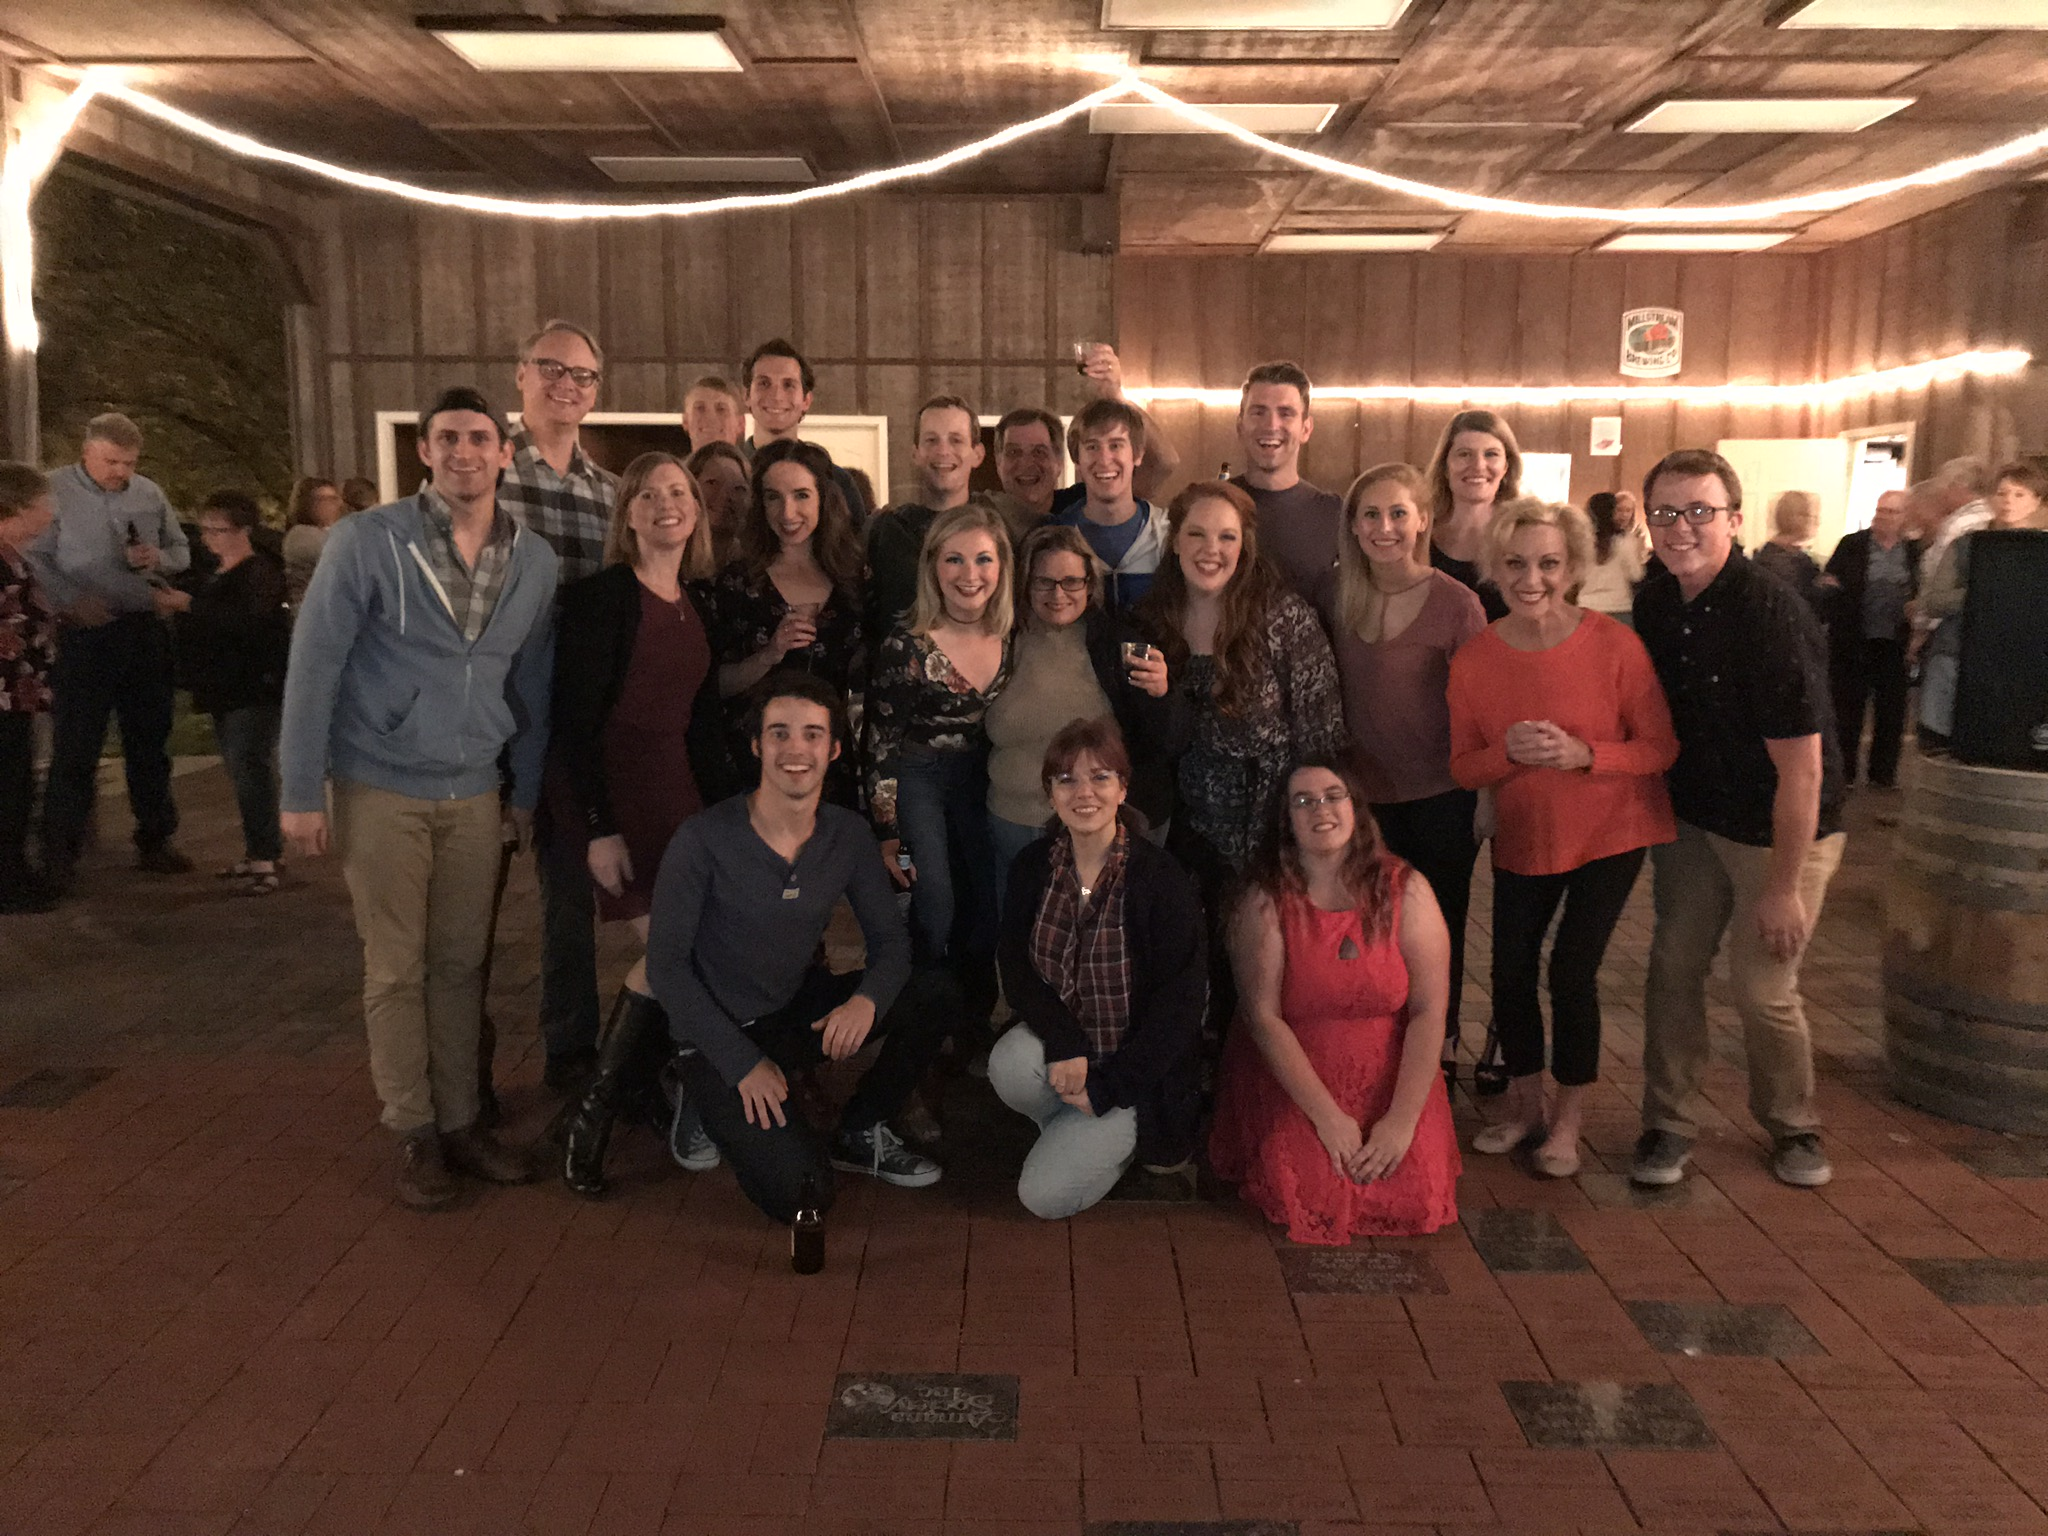 Old Creamery Theatre Footloose cast and crew